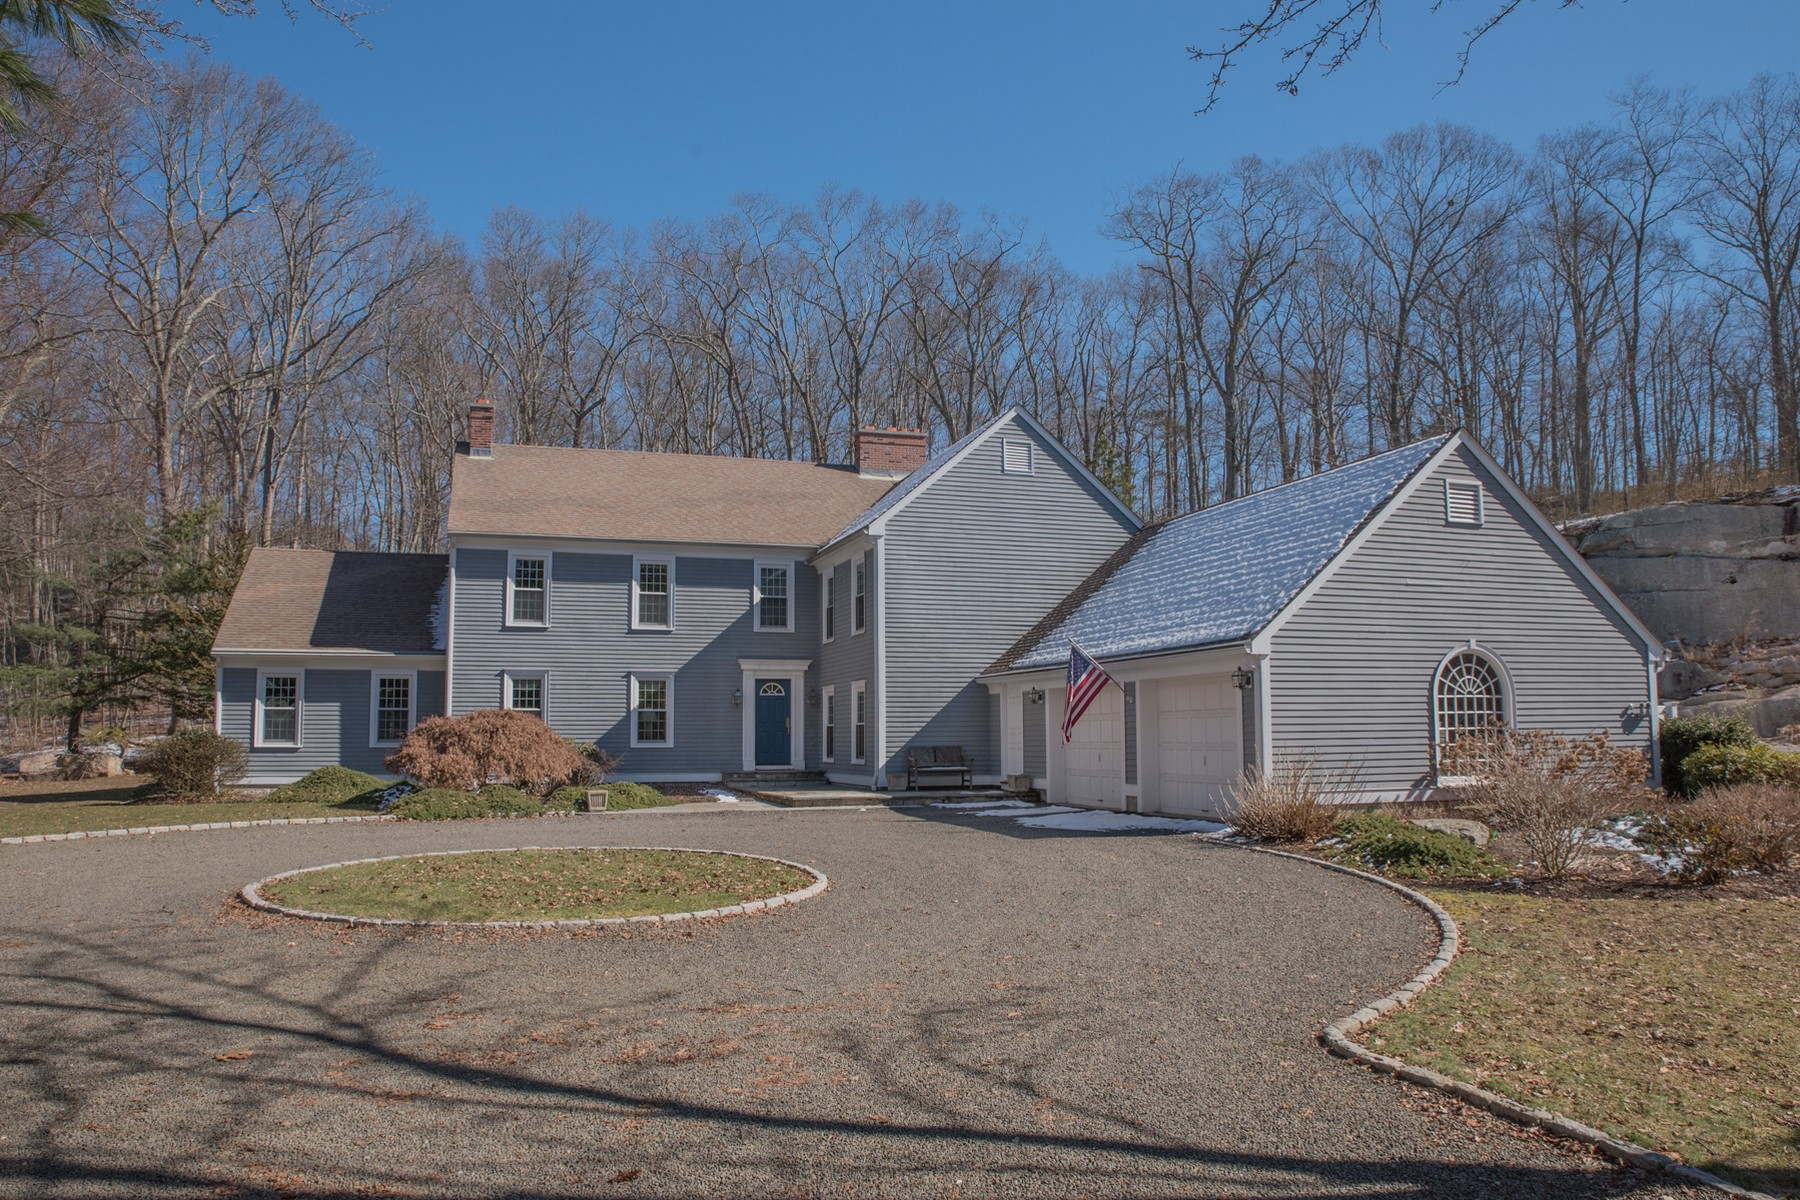 Single Family Home for Sale at Gracious Four Bedroom Colonial 4-1 Talcott Farm Road Old Lyme, Connecticut 06371 United States